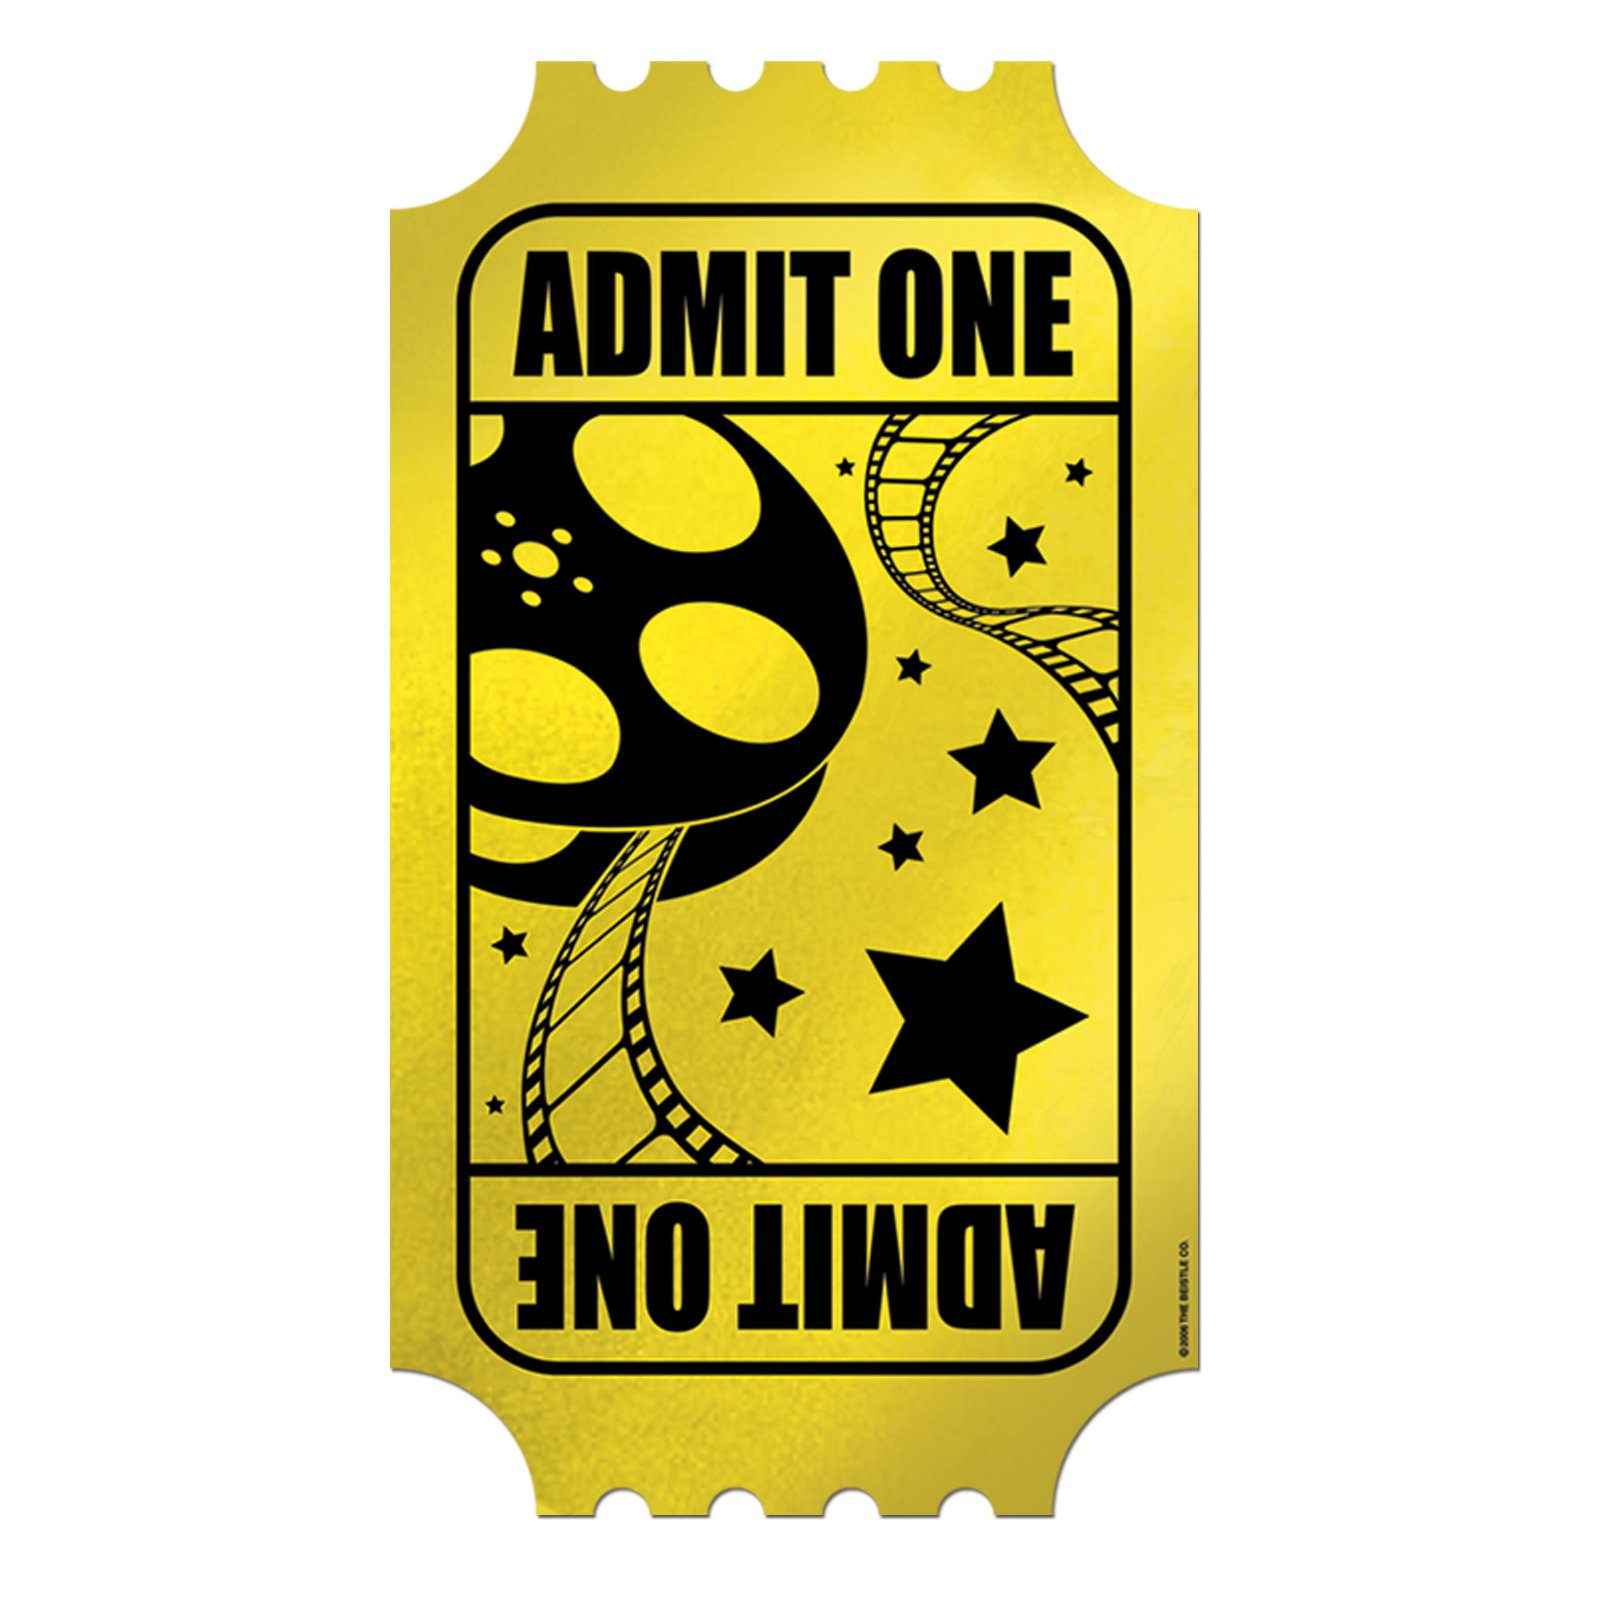 1600x1600 Golden Ticket Clip Art